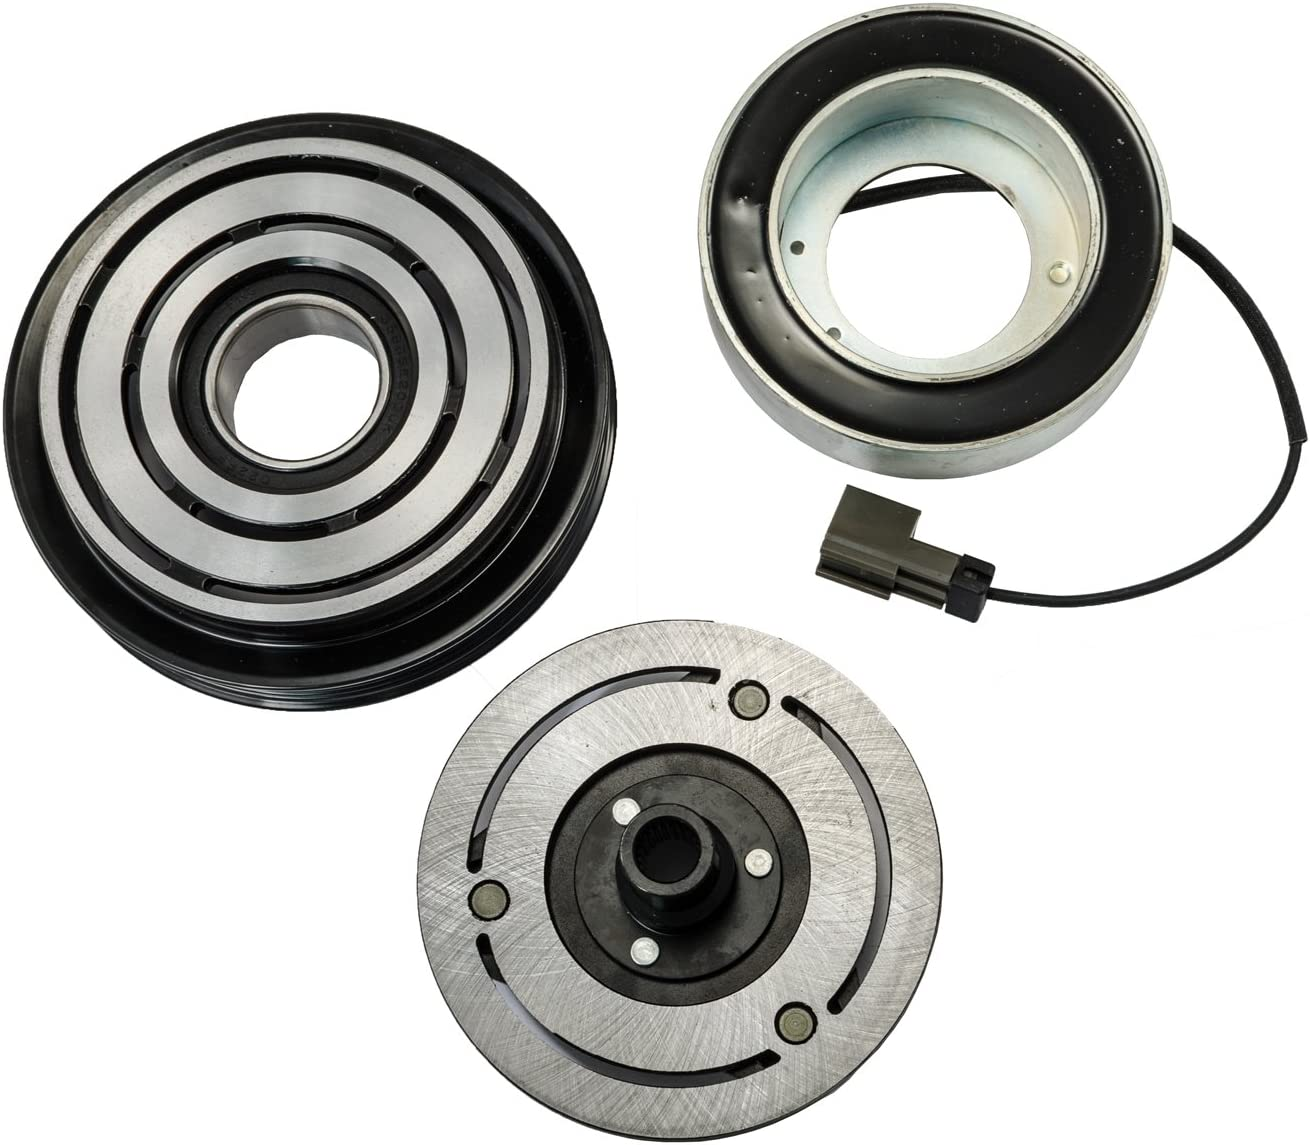 AC COMPRESSOR CLUTCH KIT PULLEY BEARING PLATE 2011-2014 Chrysler Sebring 2.4L